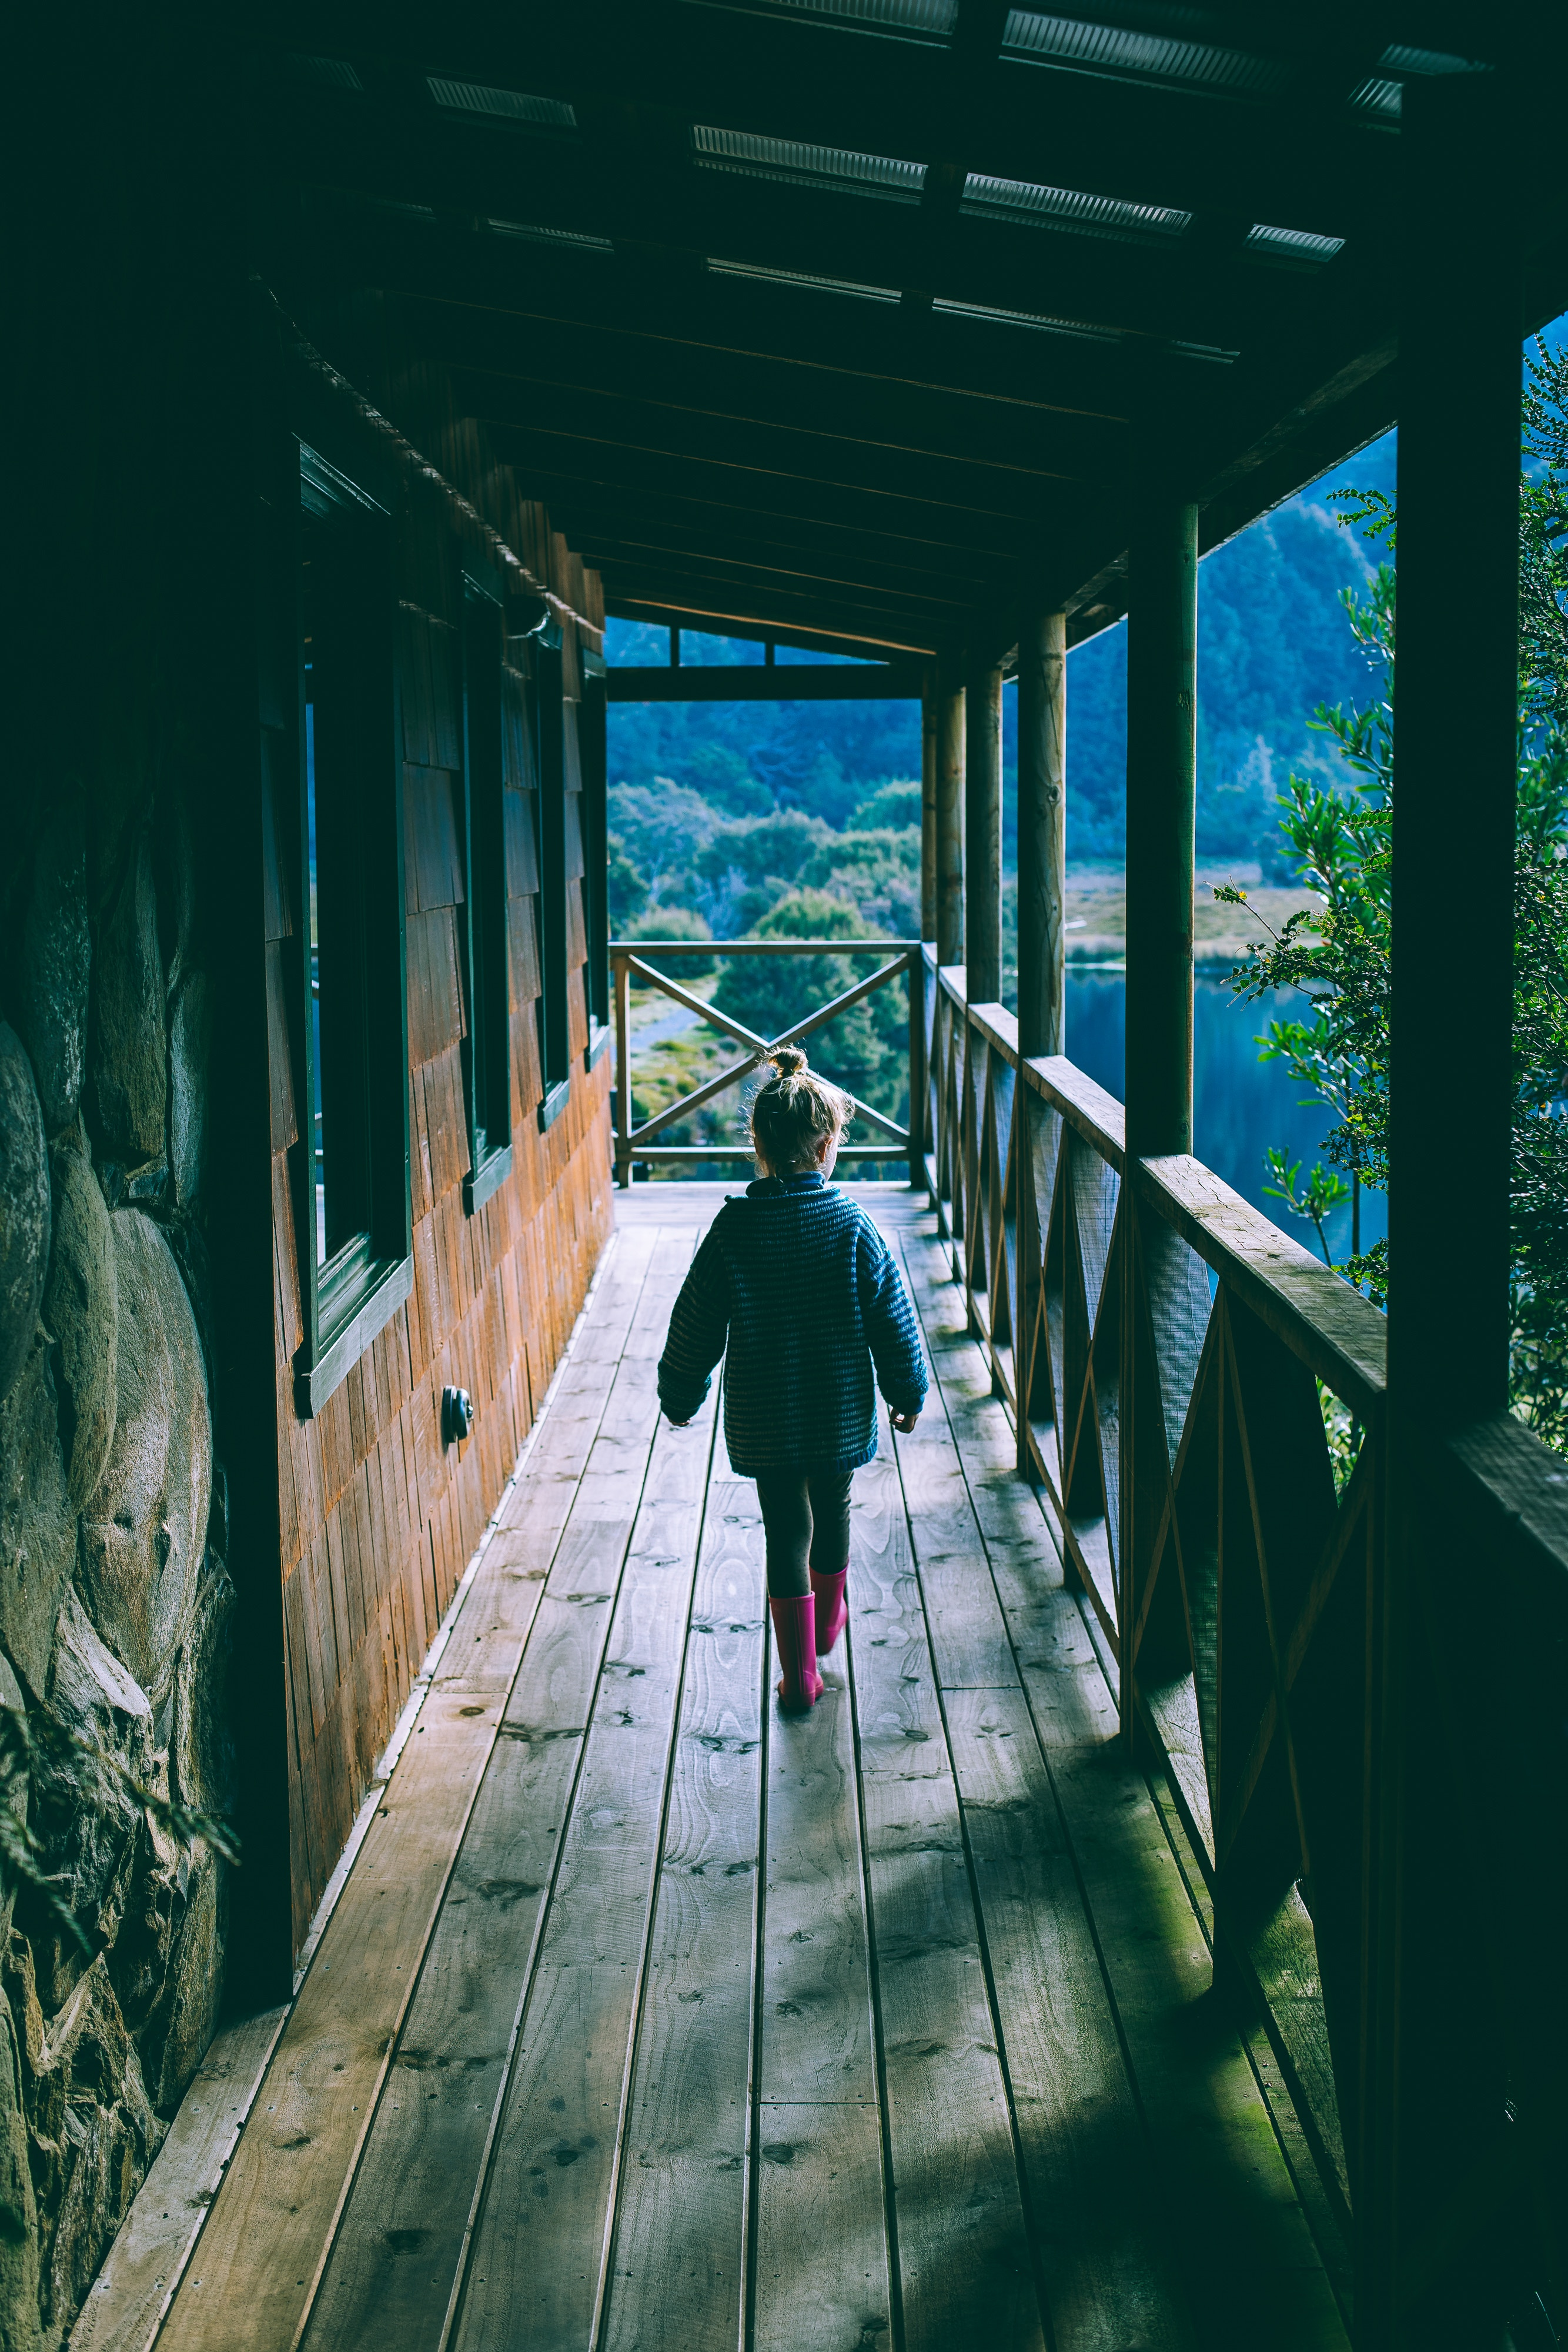 118313 download wallpaper Miscellanea, Miscellaneous, Child, Girl, Terrace, Stroll, House screensavers and pictures for free